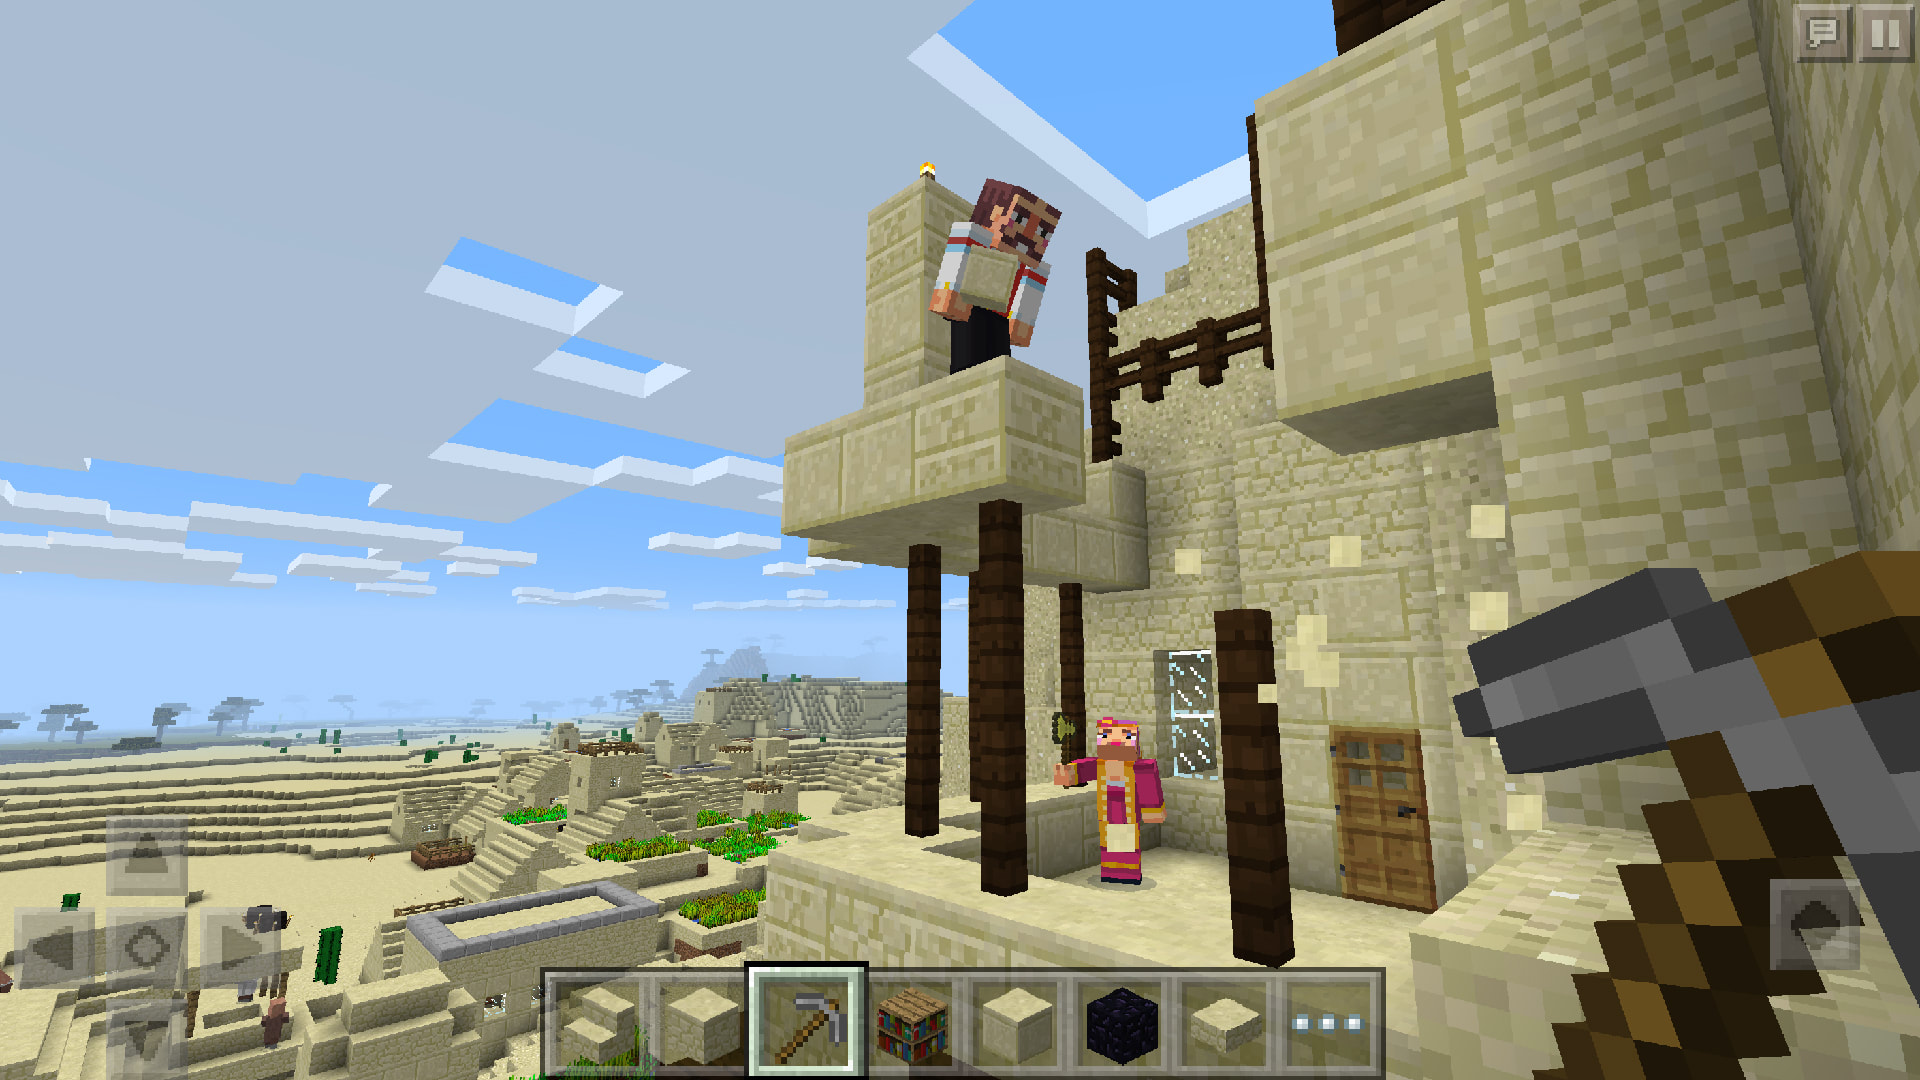 Minecraft' players on Windows 10 and mobile can now build